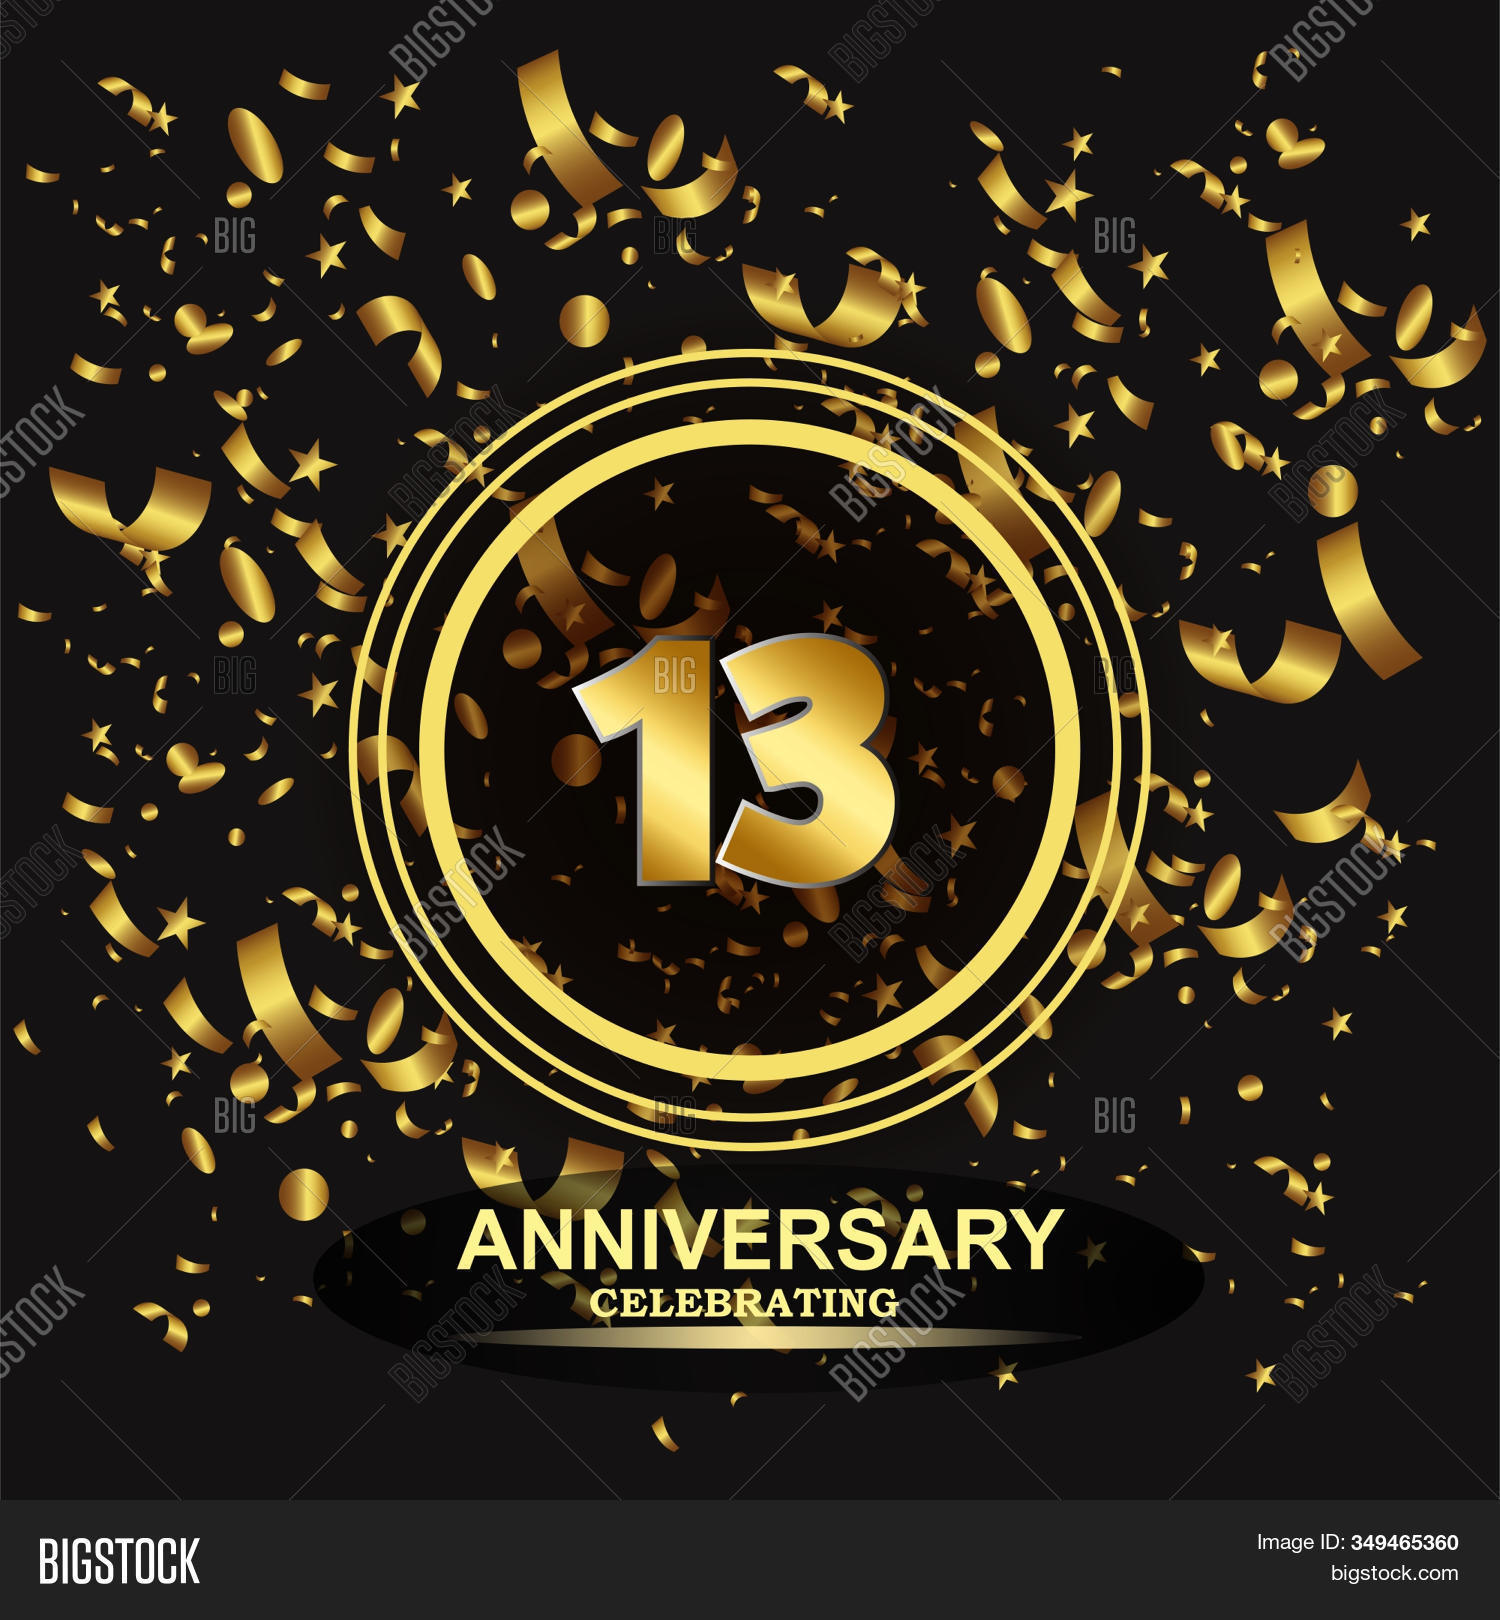 13 Year Anniversary Vector Photo Free Trial Bigstock